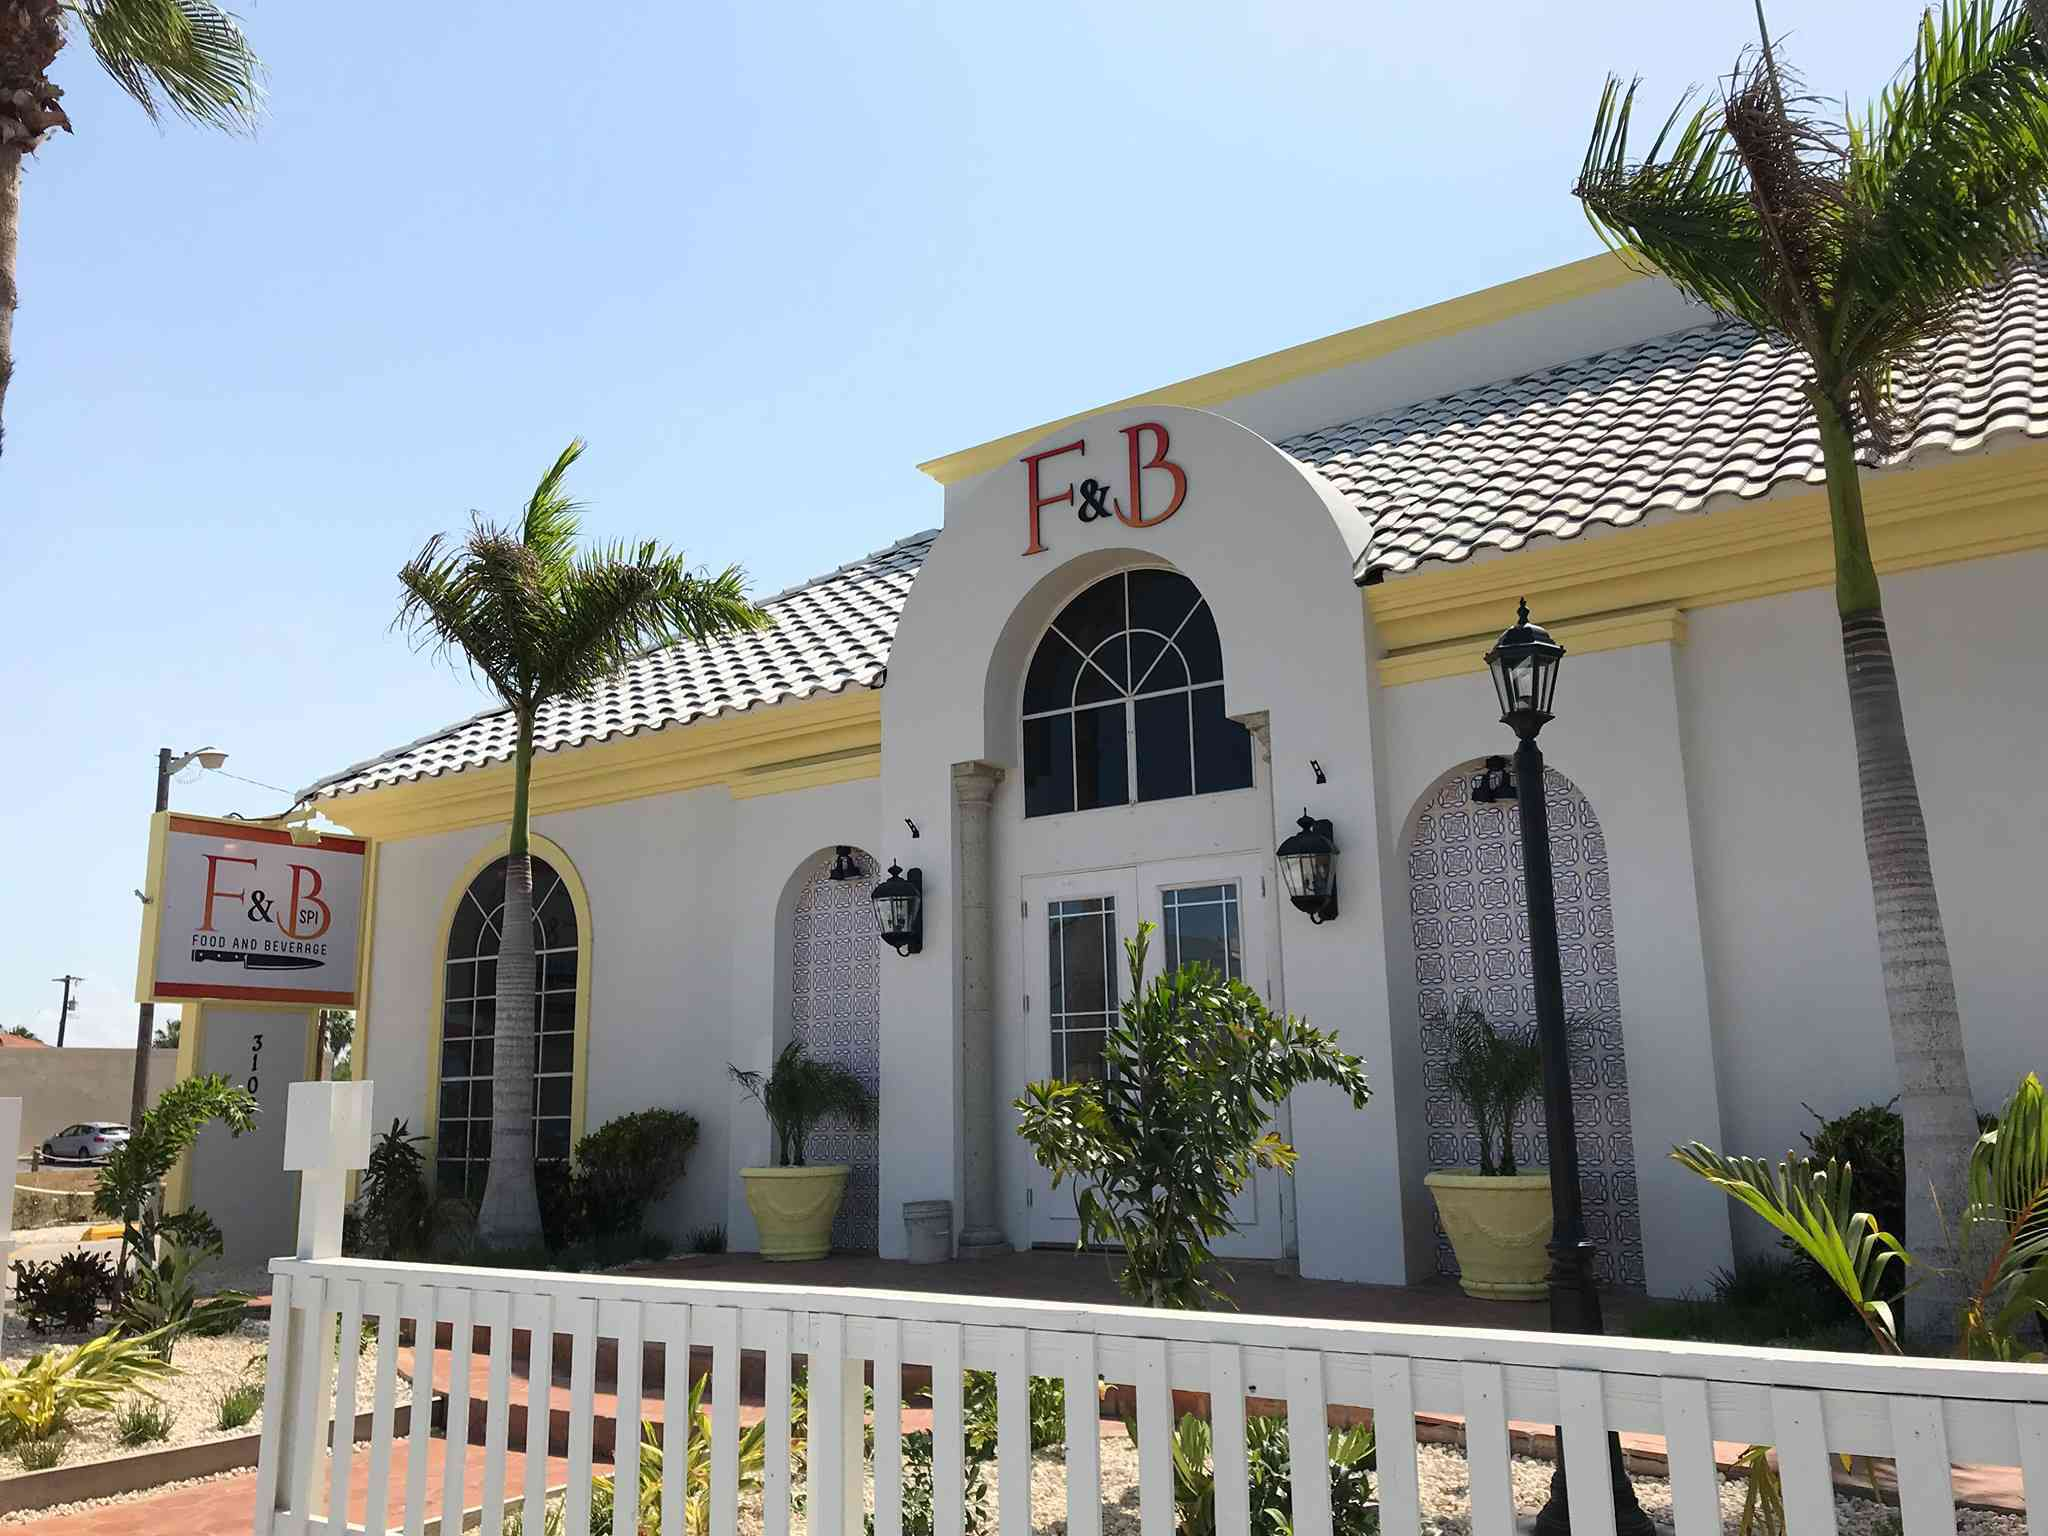 The outside of F&B, a cheery white building with yellow trim, flanked by palm trees